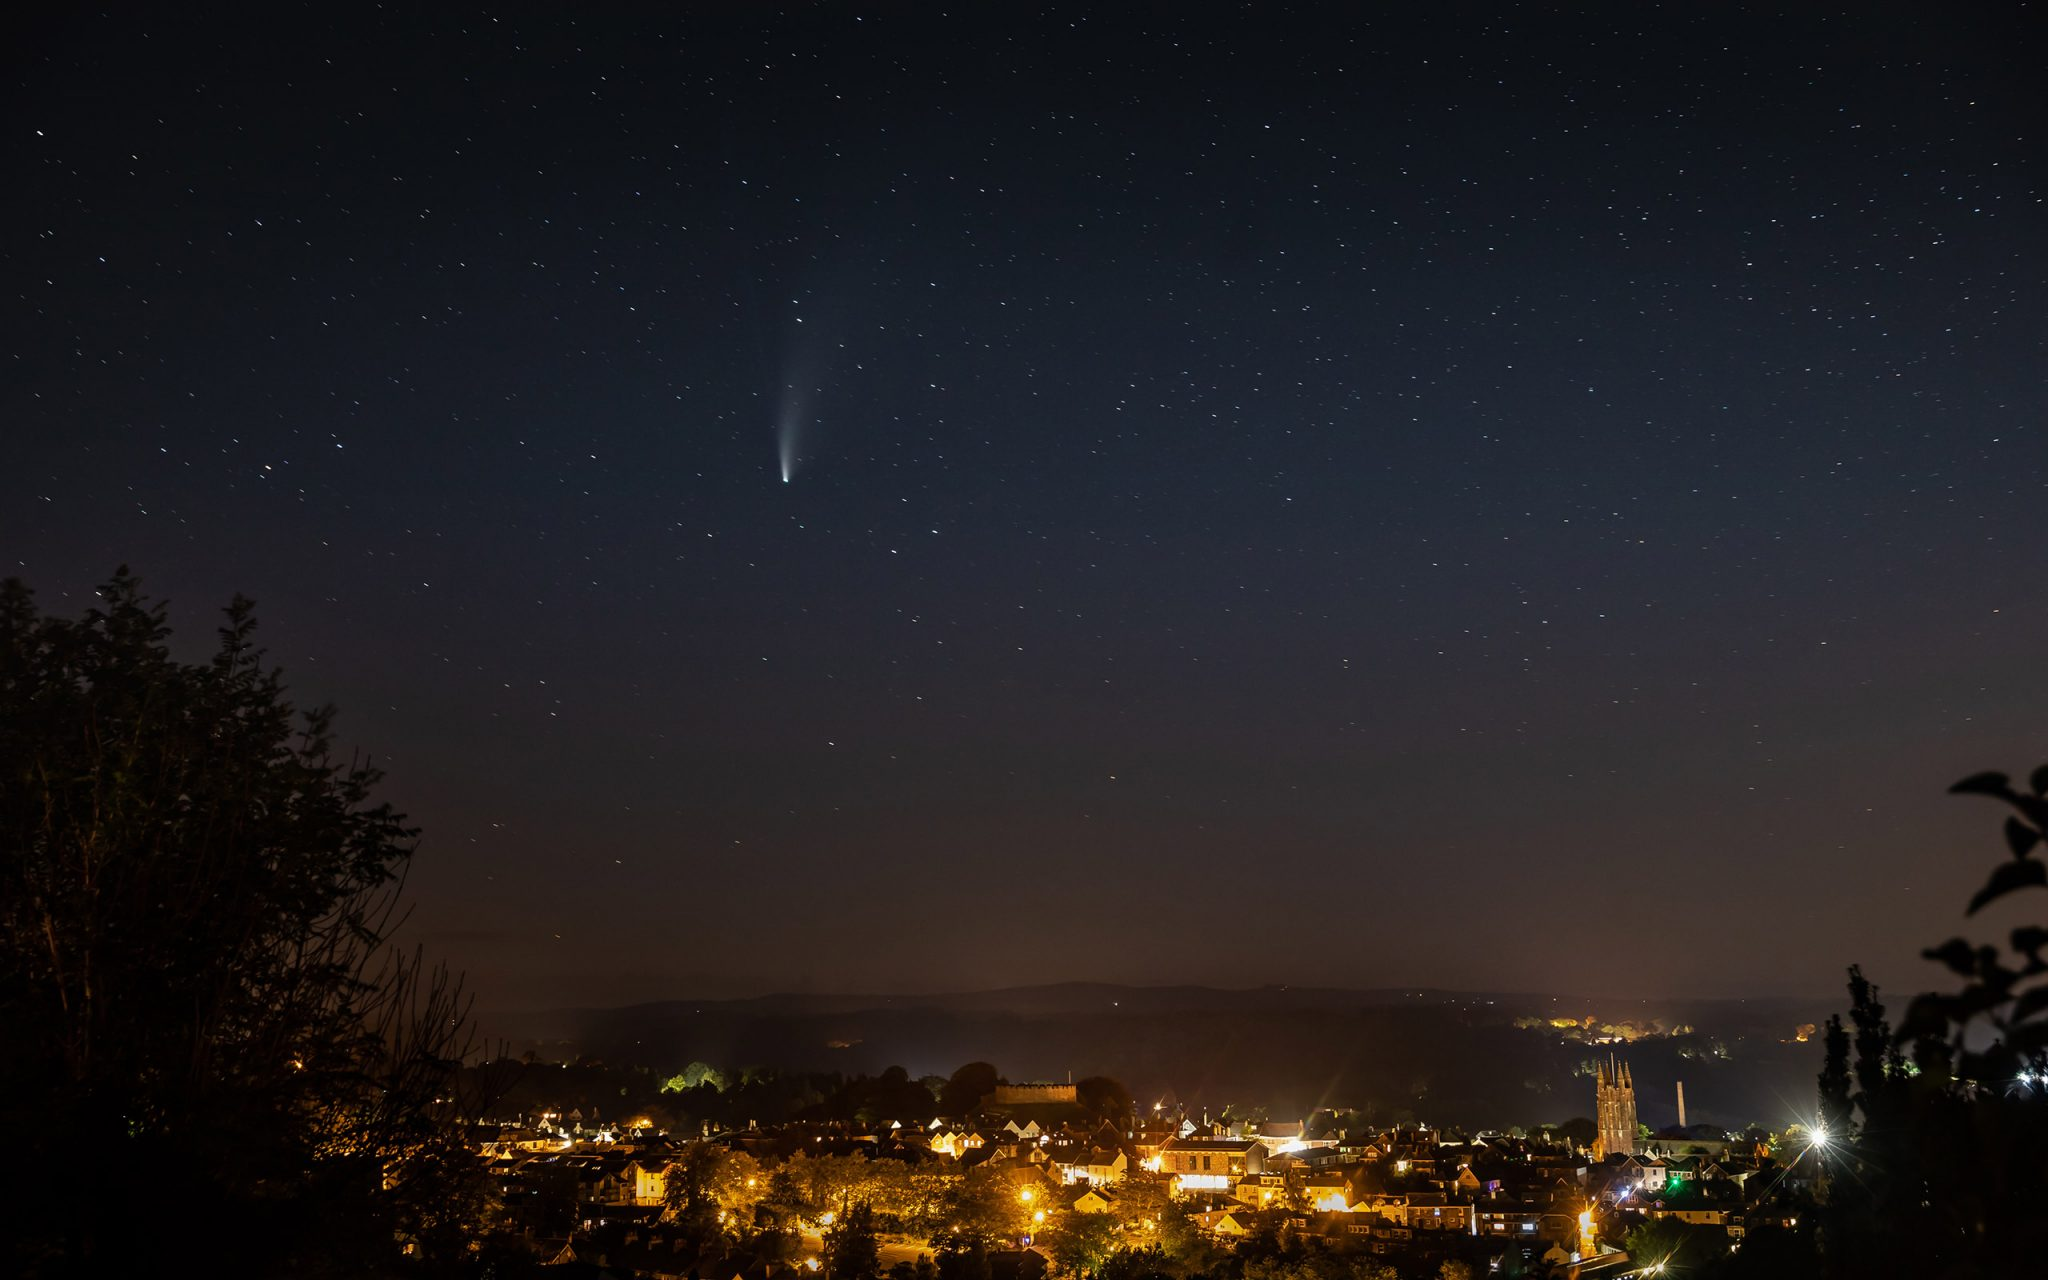 Comet Neowise sets above the 1000-year-old castle in Totnes, South Devon, UK. Dartmoor and Haytor are visible in the distance.